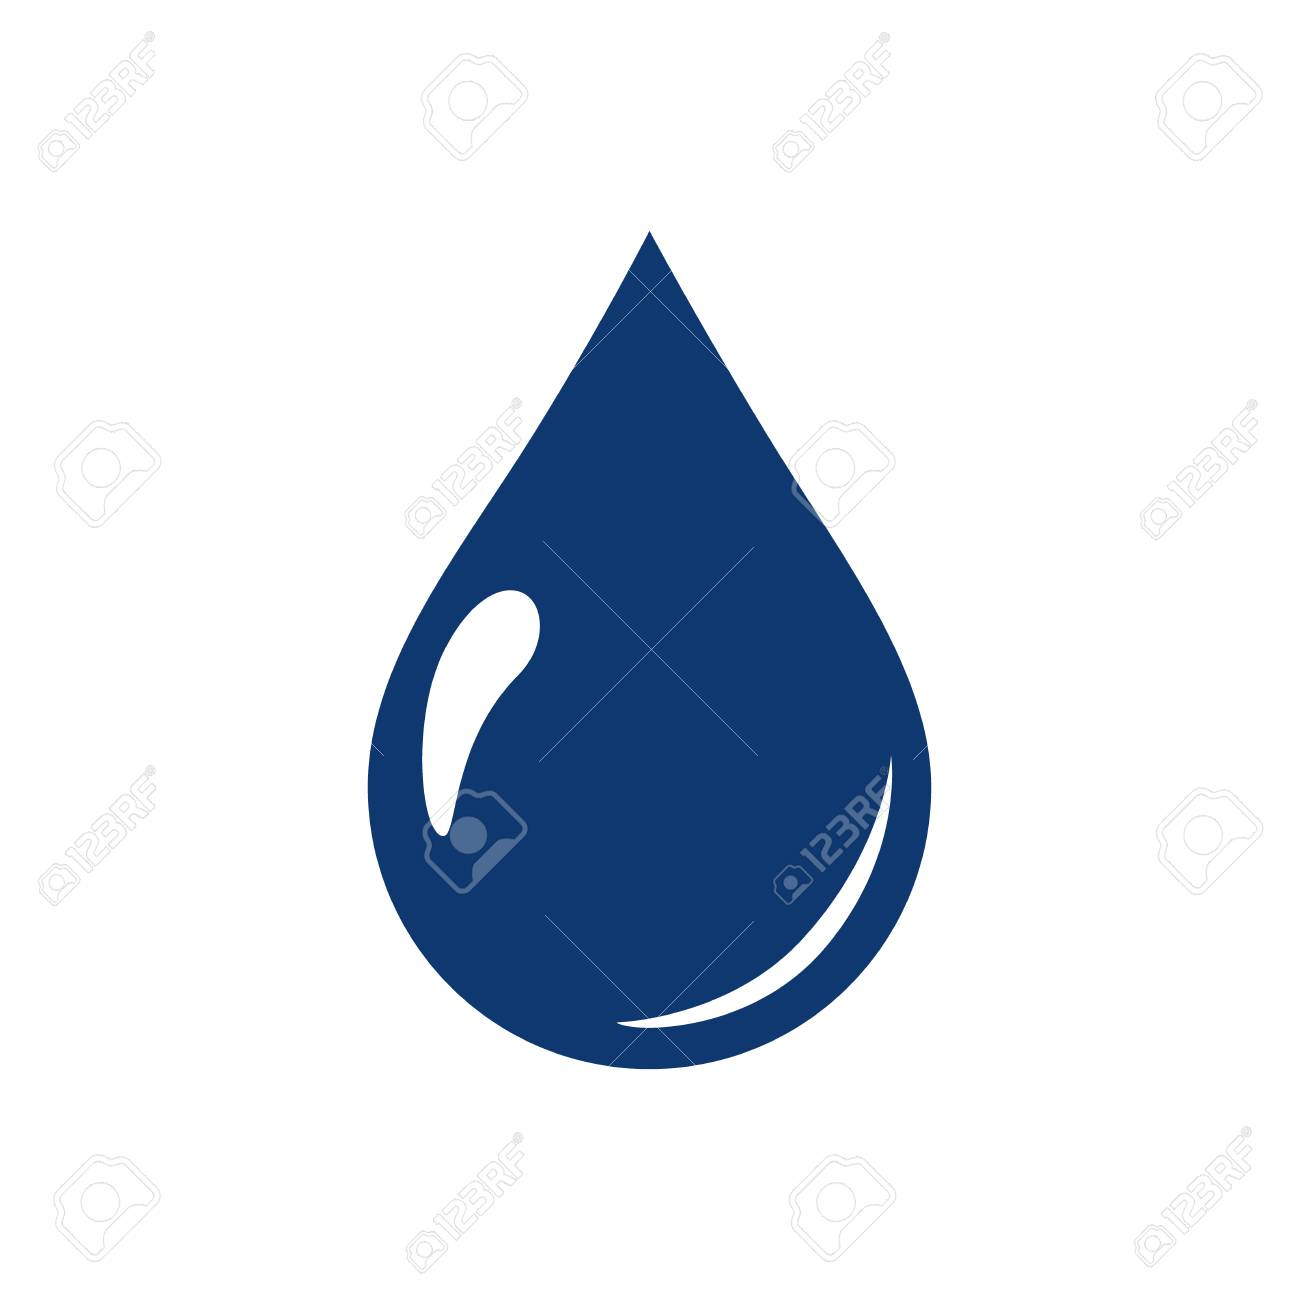 water drops icon symbols vector. Ecological water icon for web page. Aqua environment or nature raindrop simple isolated liquid. Nature freshness and clean concept. - 126772592